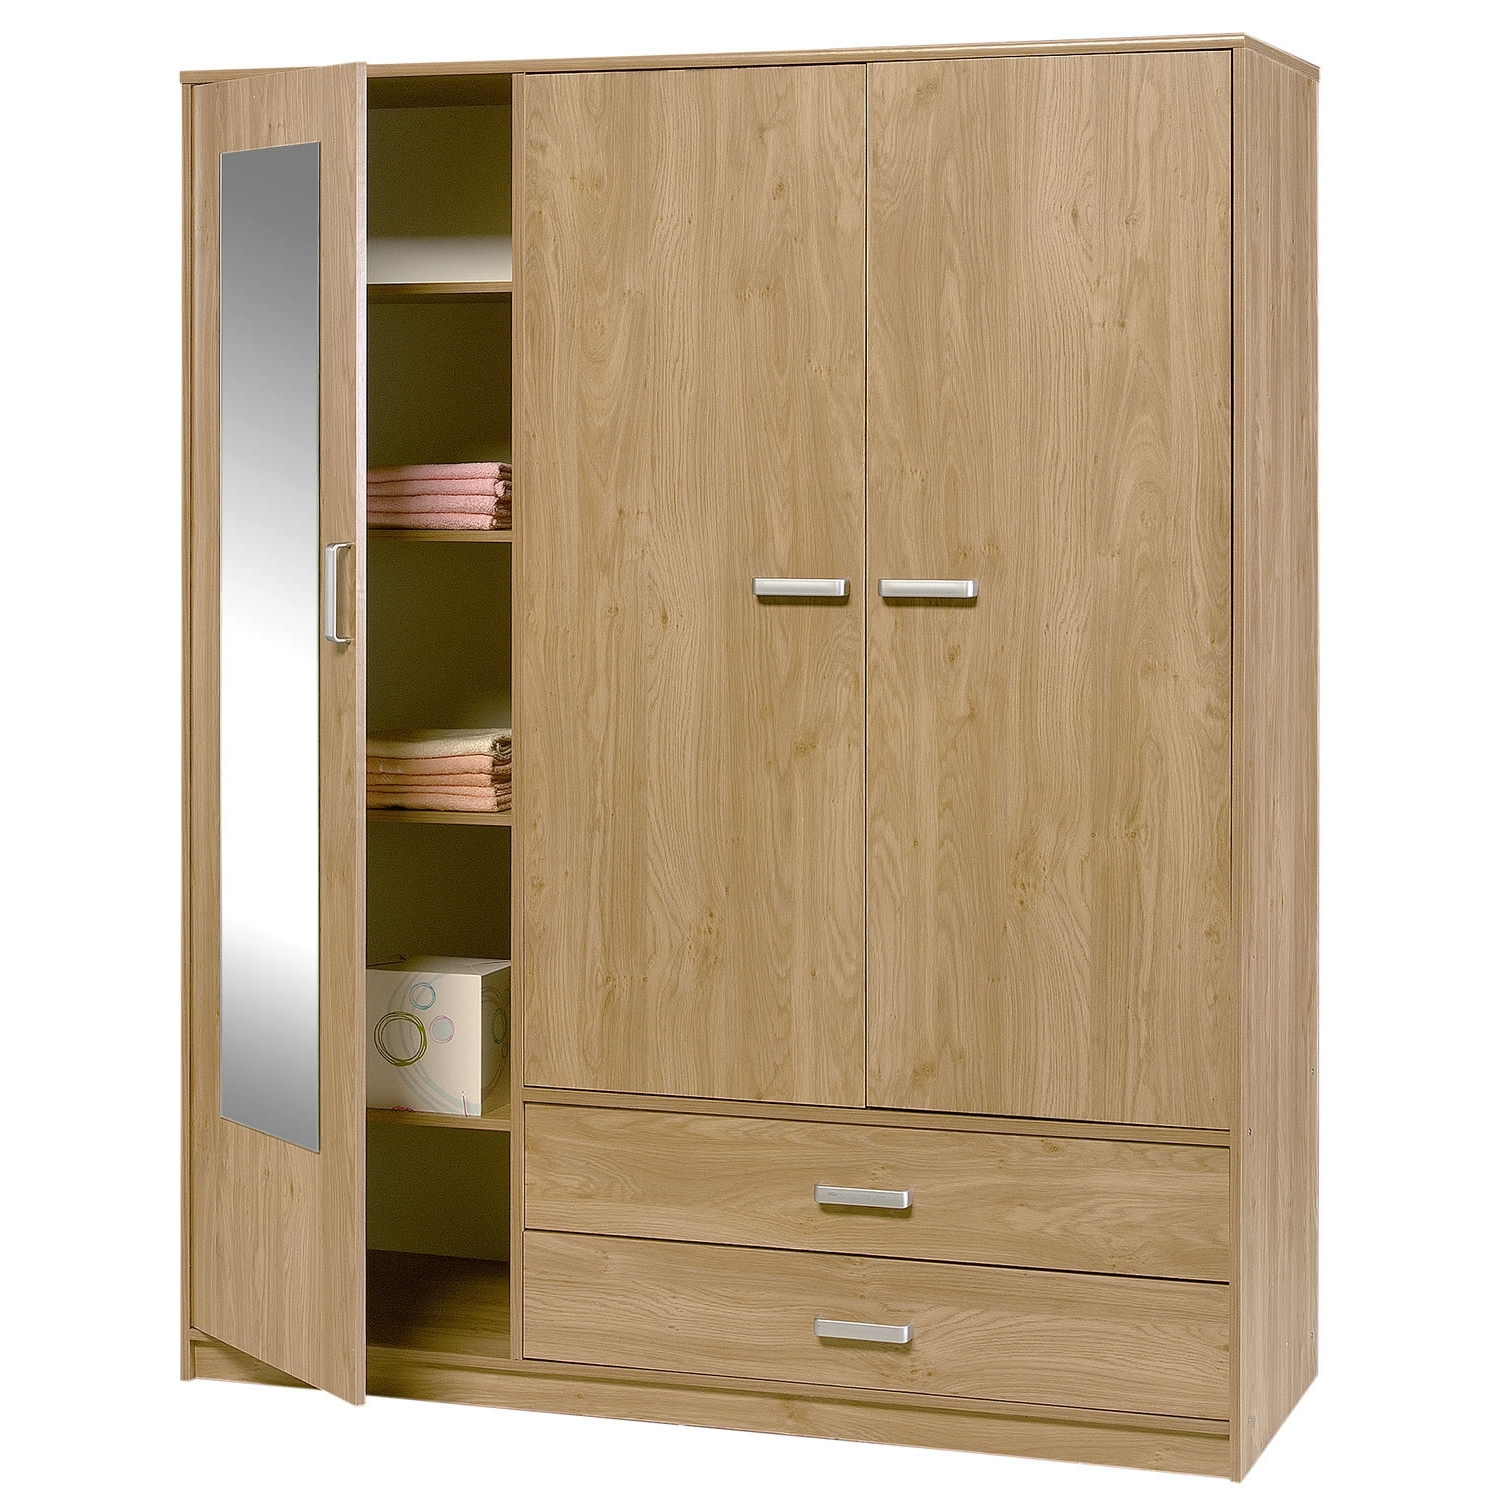 3 Doors Wardrobes With Mirror Throughout Well Known Wardrobes:single Door Wardrobe (Gallery 11 of 15)